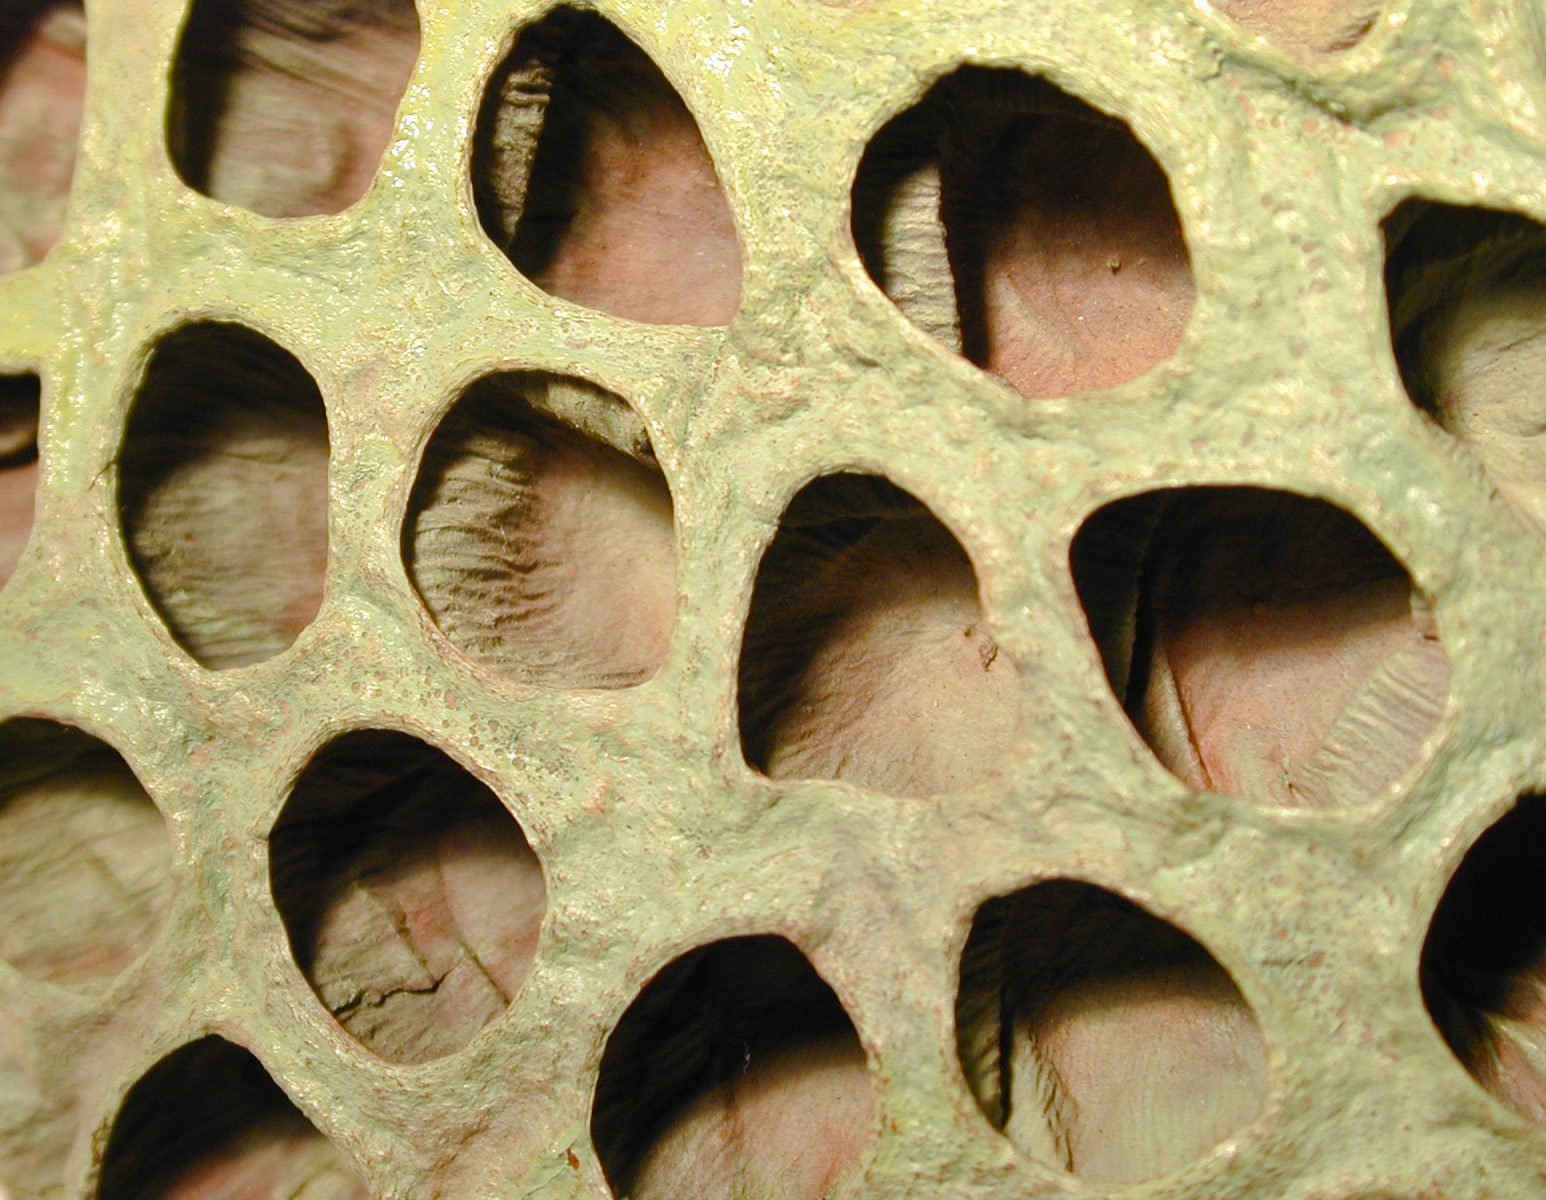 the head of a lotus flower after seeding